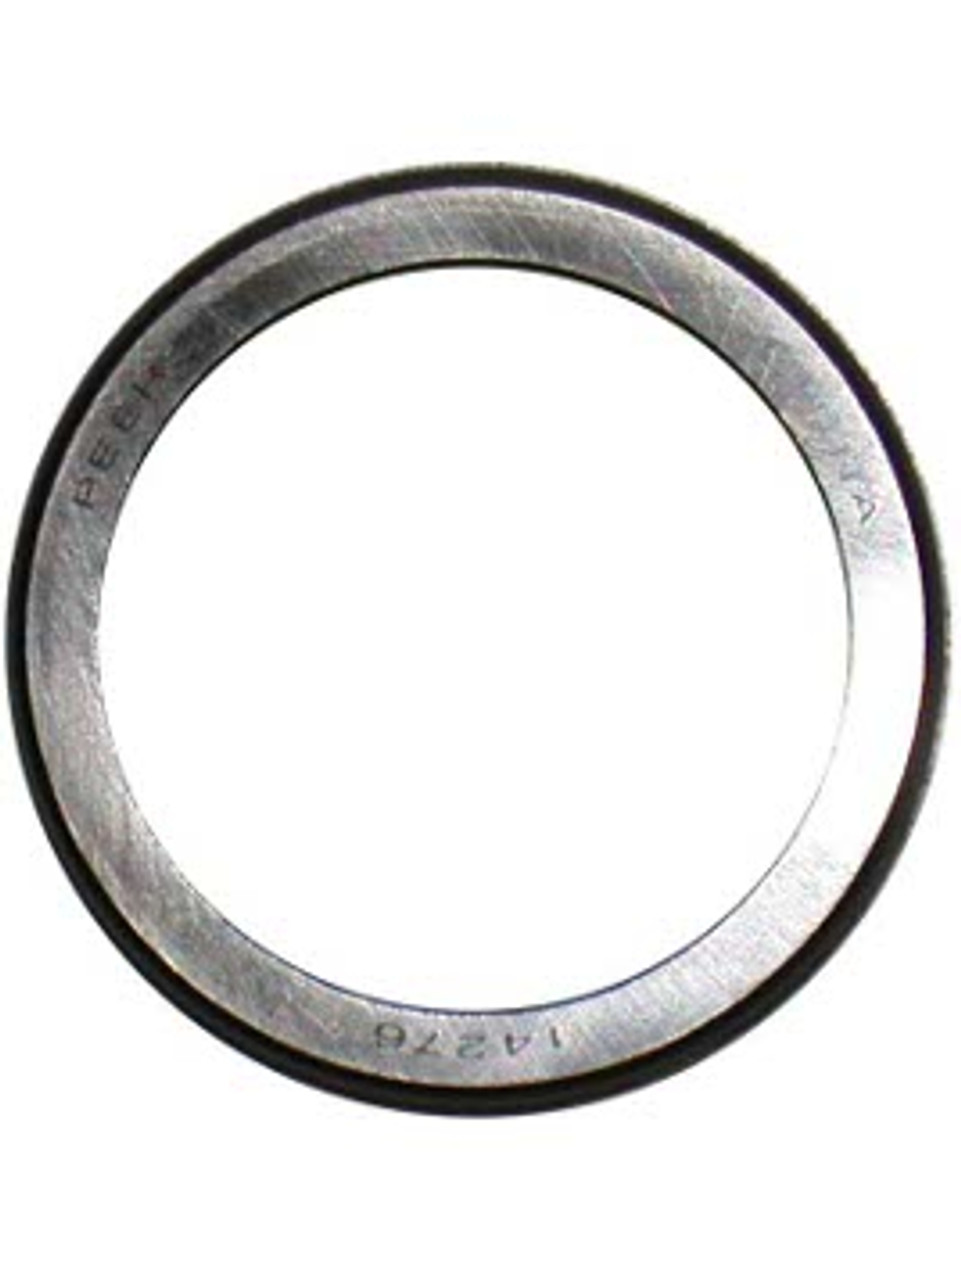 25520 --- Race (Cup) for Bearing # 25580